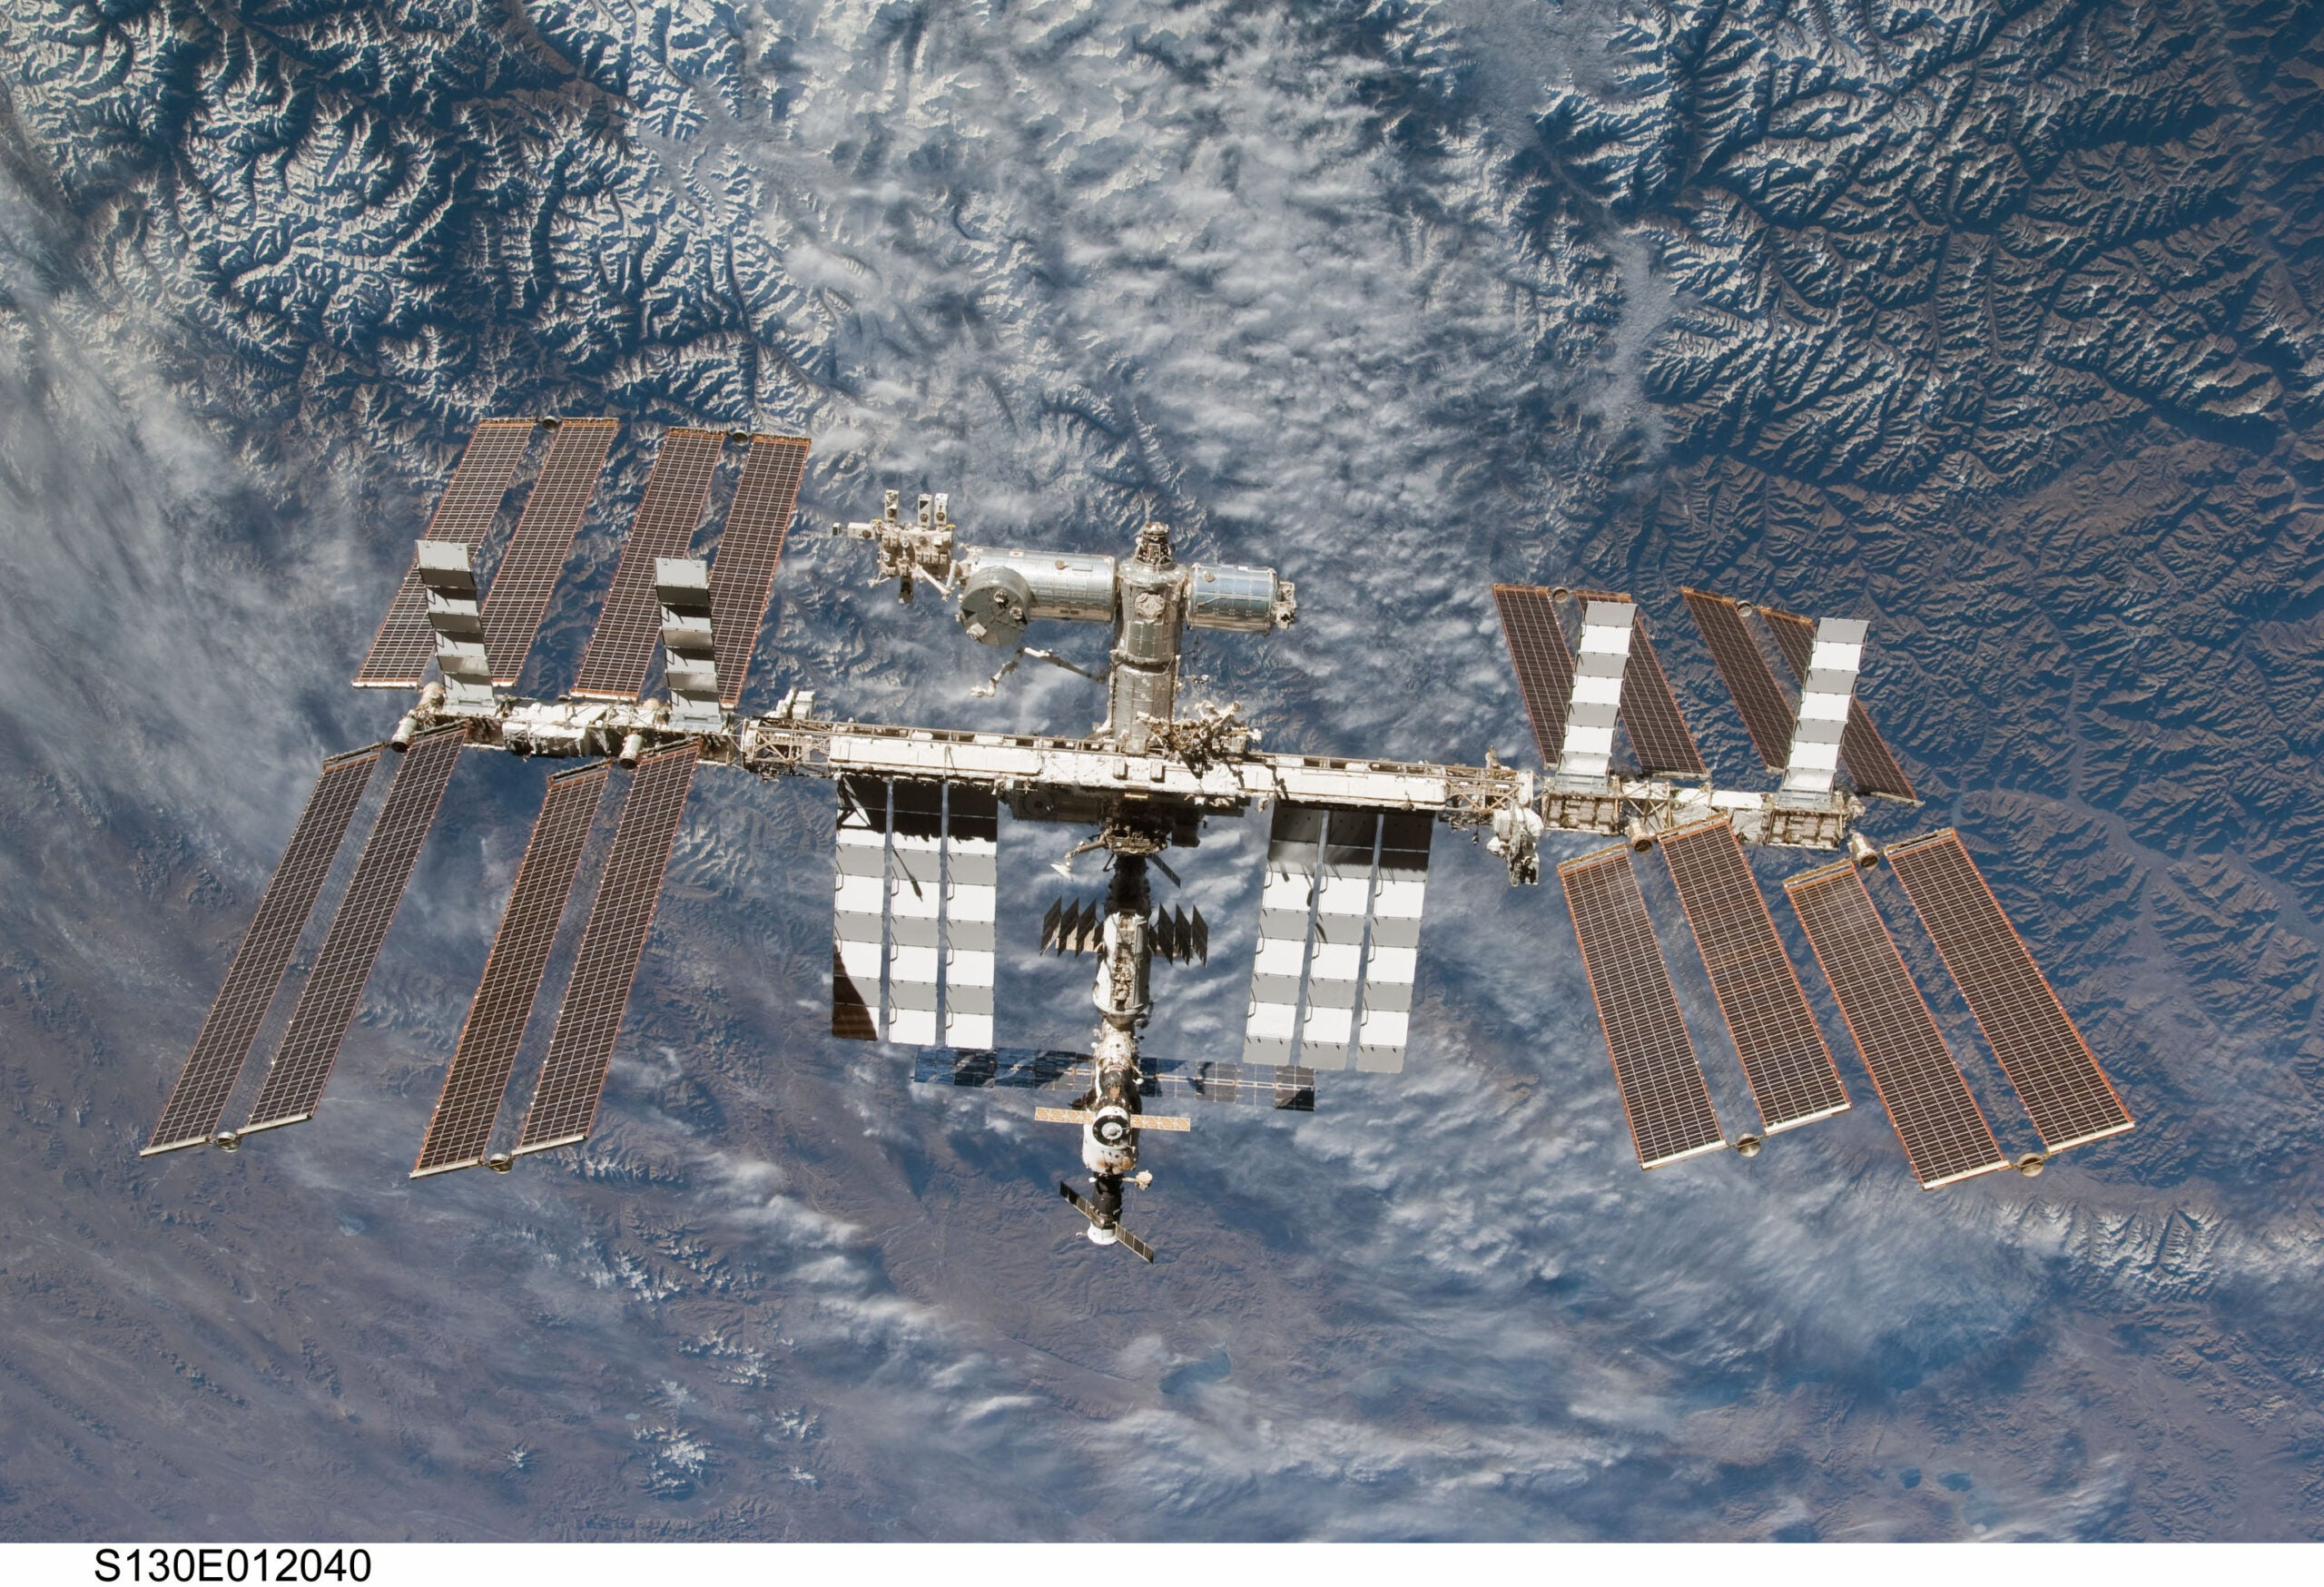 NASA Is Making Parking Spots On The Space Station For Commercial Taxis